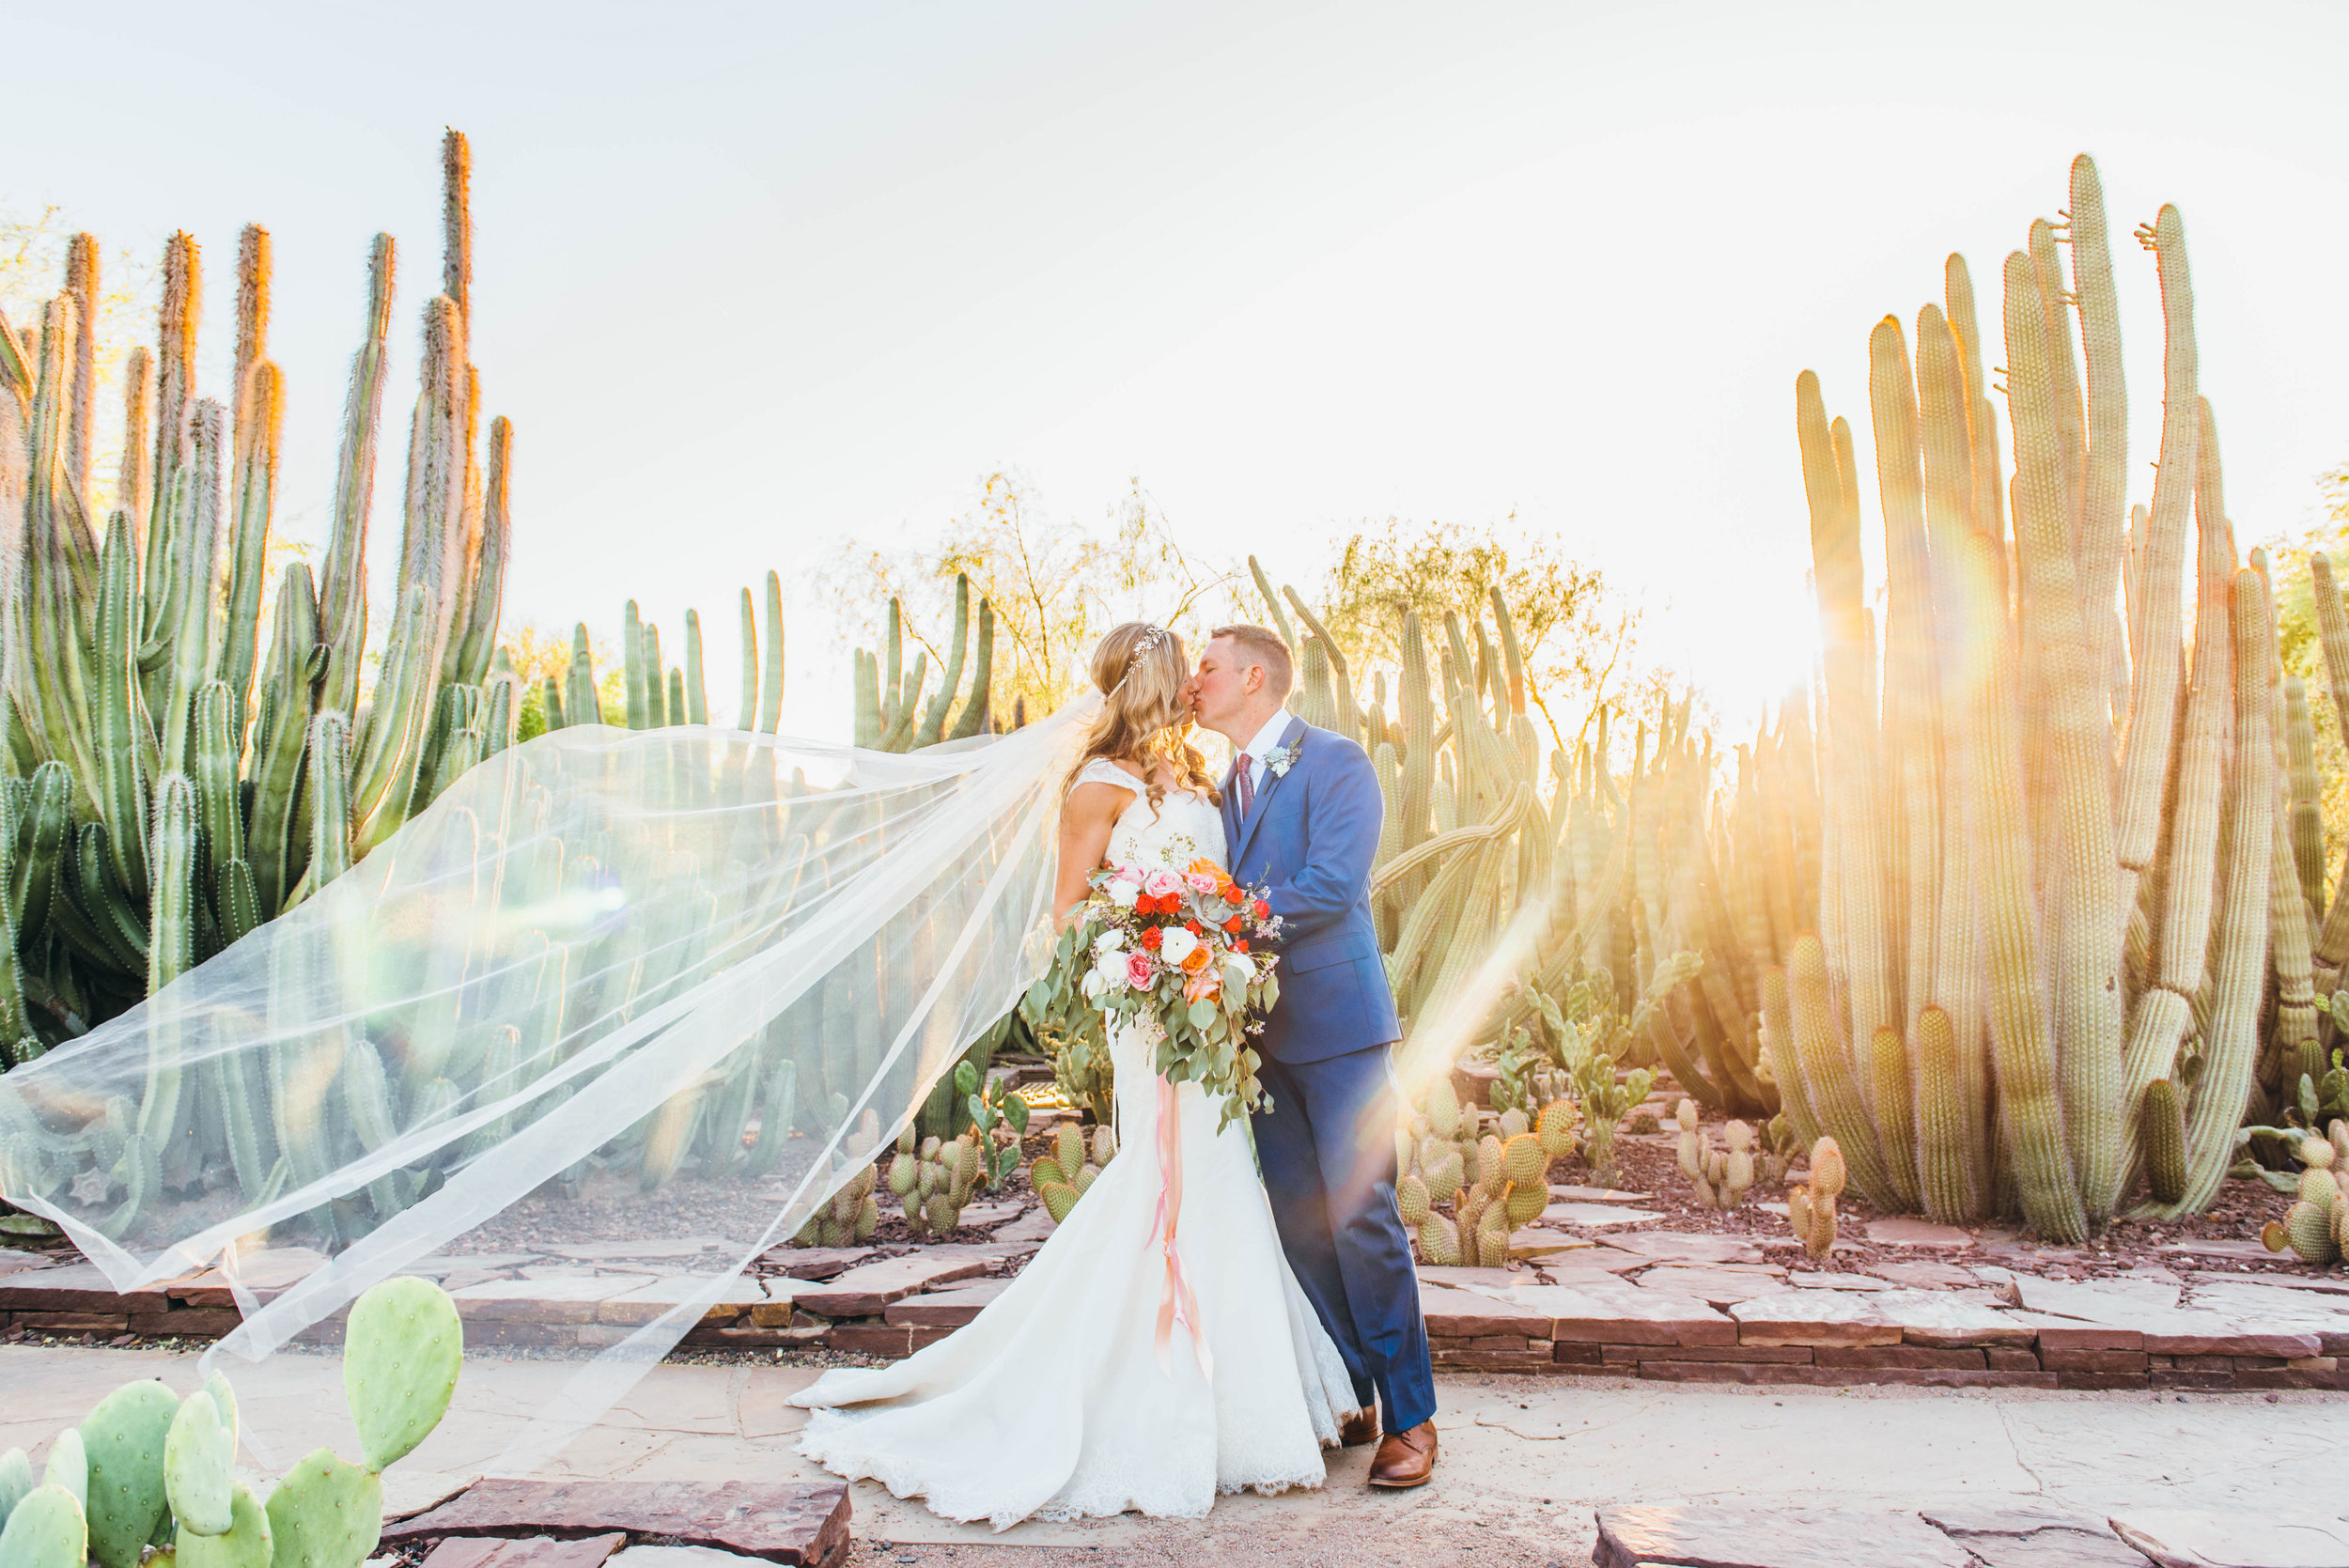 desert wedding veil blowing in wind cactus garden wedding bride groom in cactus windy desert wedding Grey Key Events photos by Shots By Angie.jpg